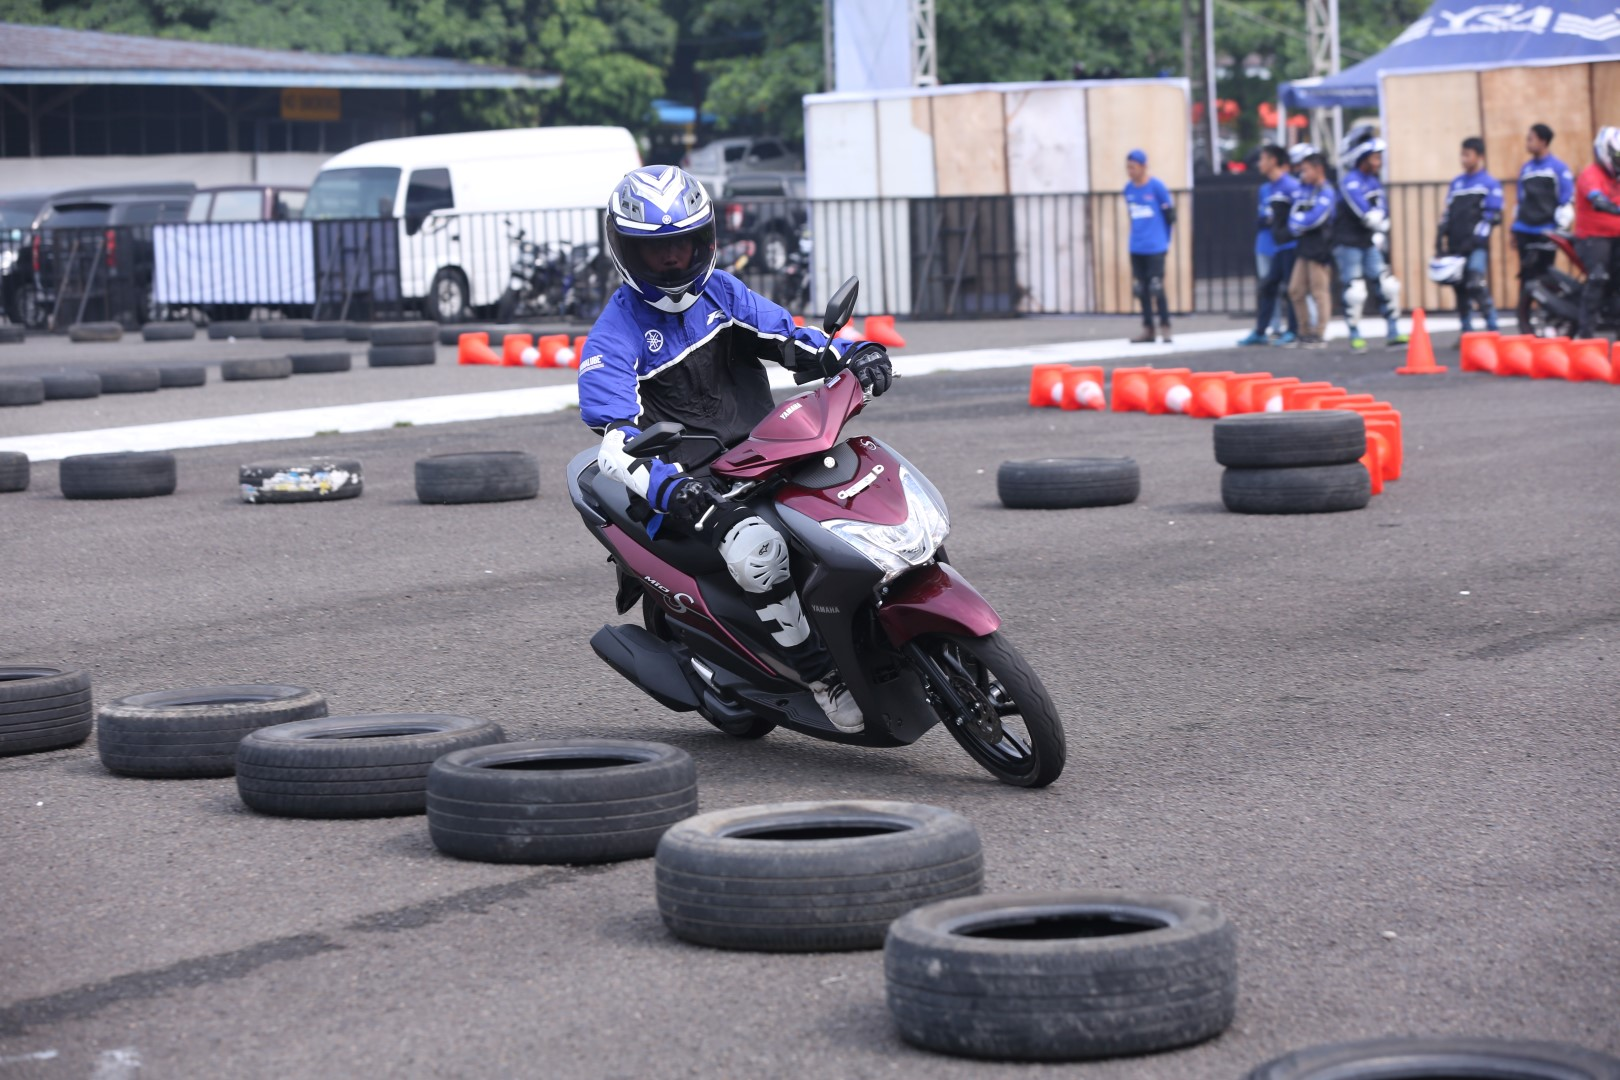 Yamaha-Goes-to-School-Safety-Riding-Competition-Mio-125